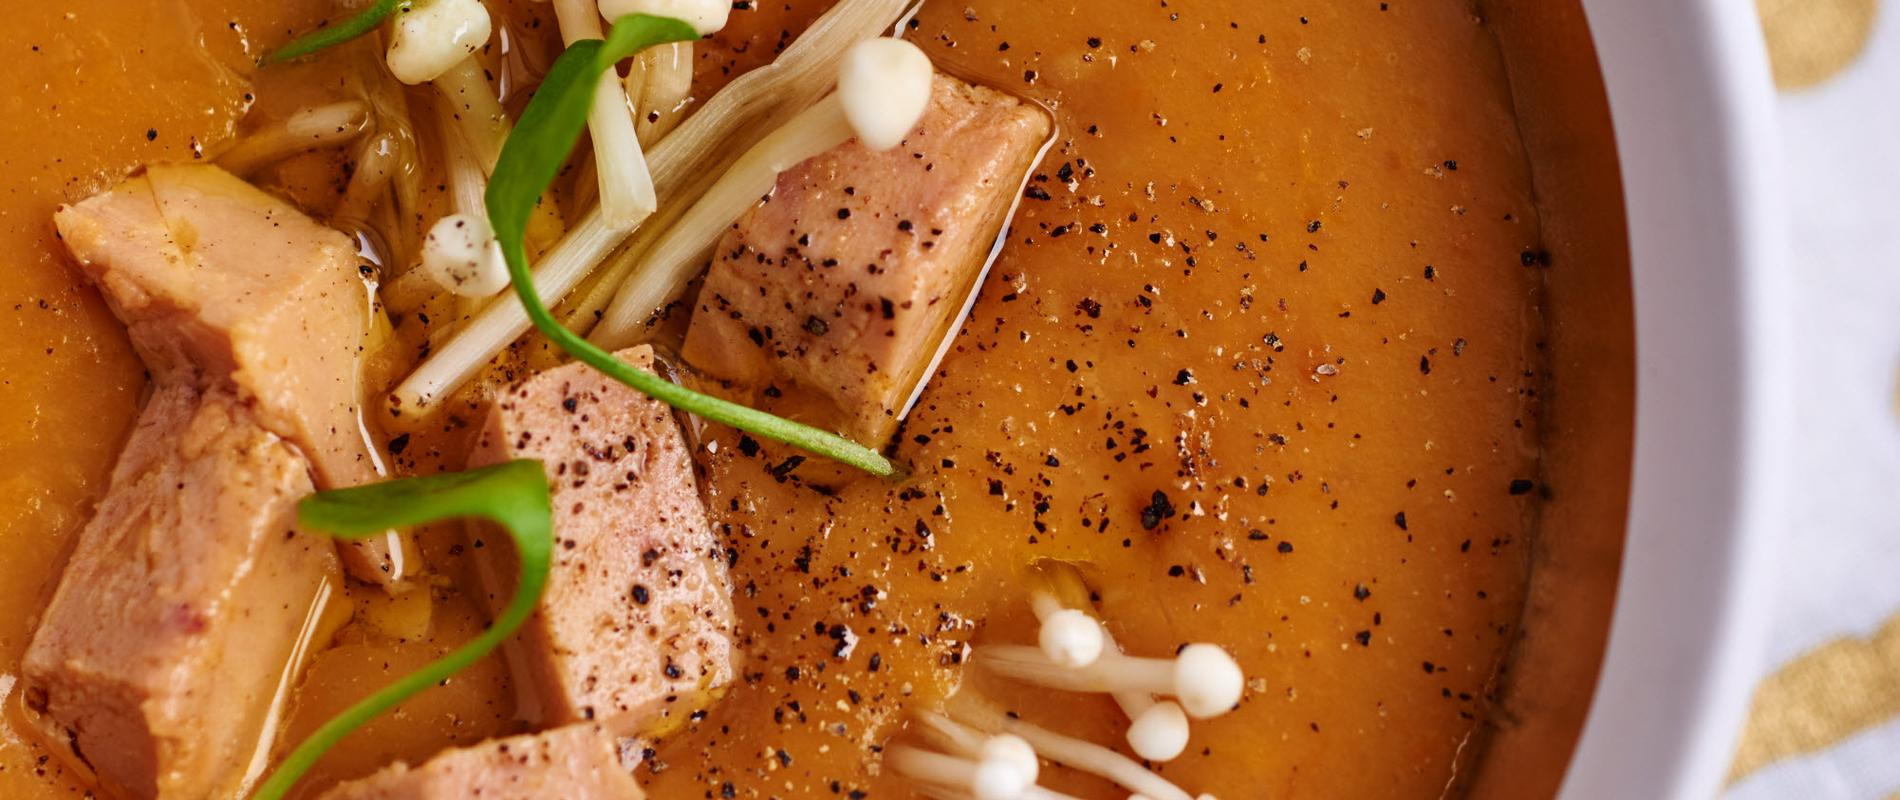 THANKSGIVING Butternut squash veloute with foie gras dice